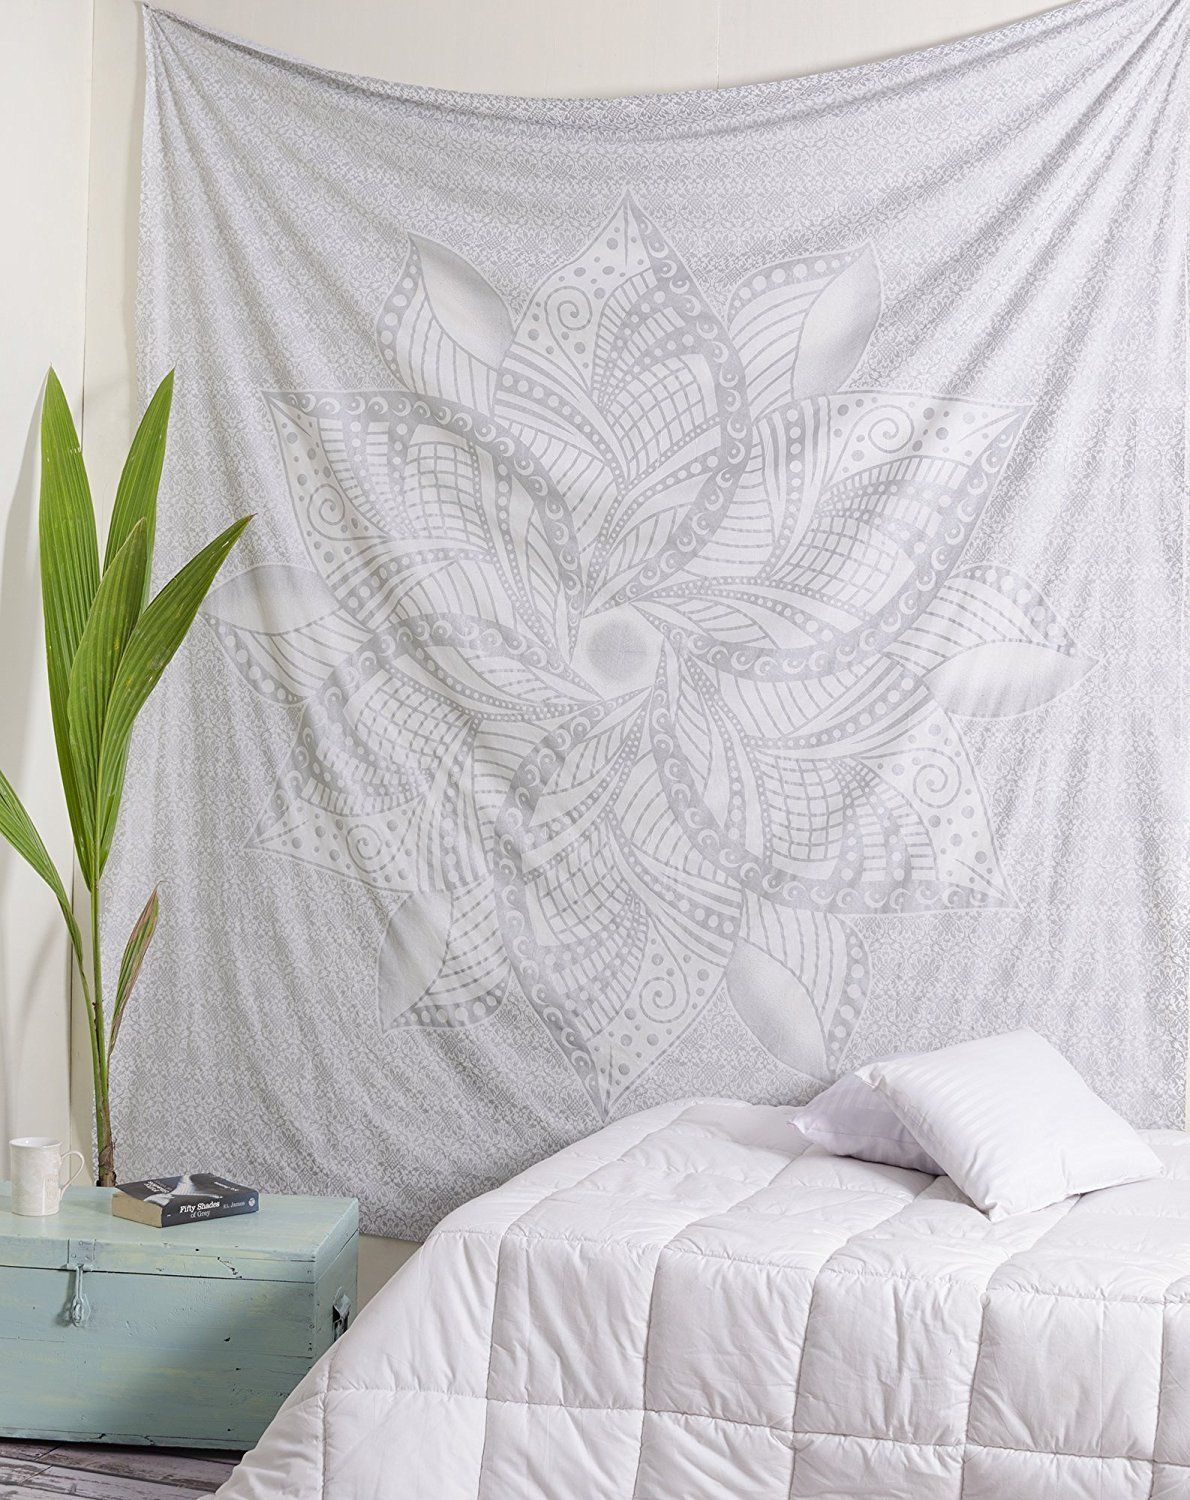 Popular Handicrafts Kp860 Queen Large Moon Ombre Silver Tapestry